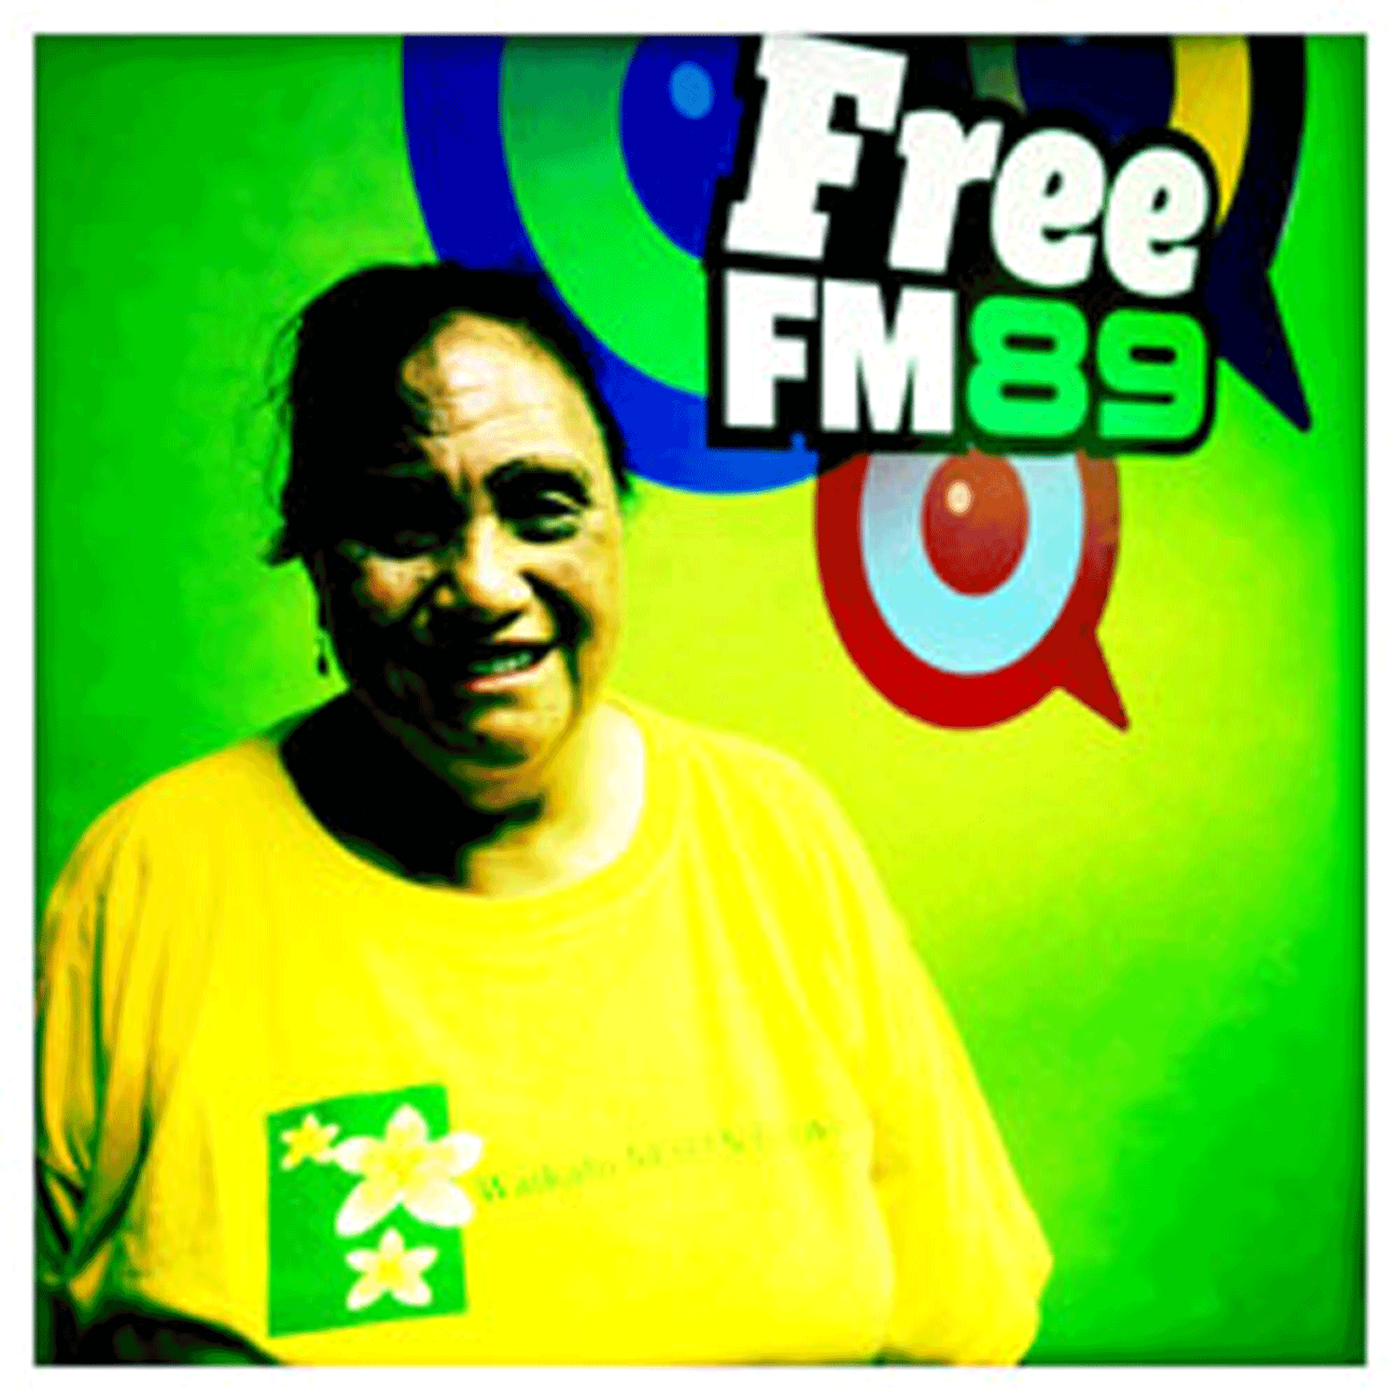 https://cdn.accessradio.org/StationFolder/freefm89/Images/Tama-Niue-Plus.png